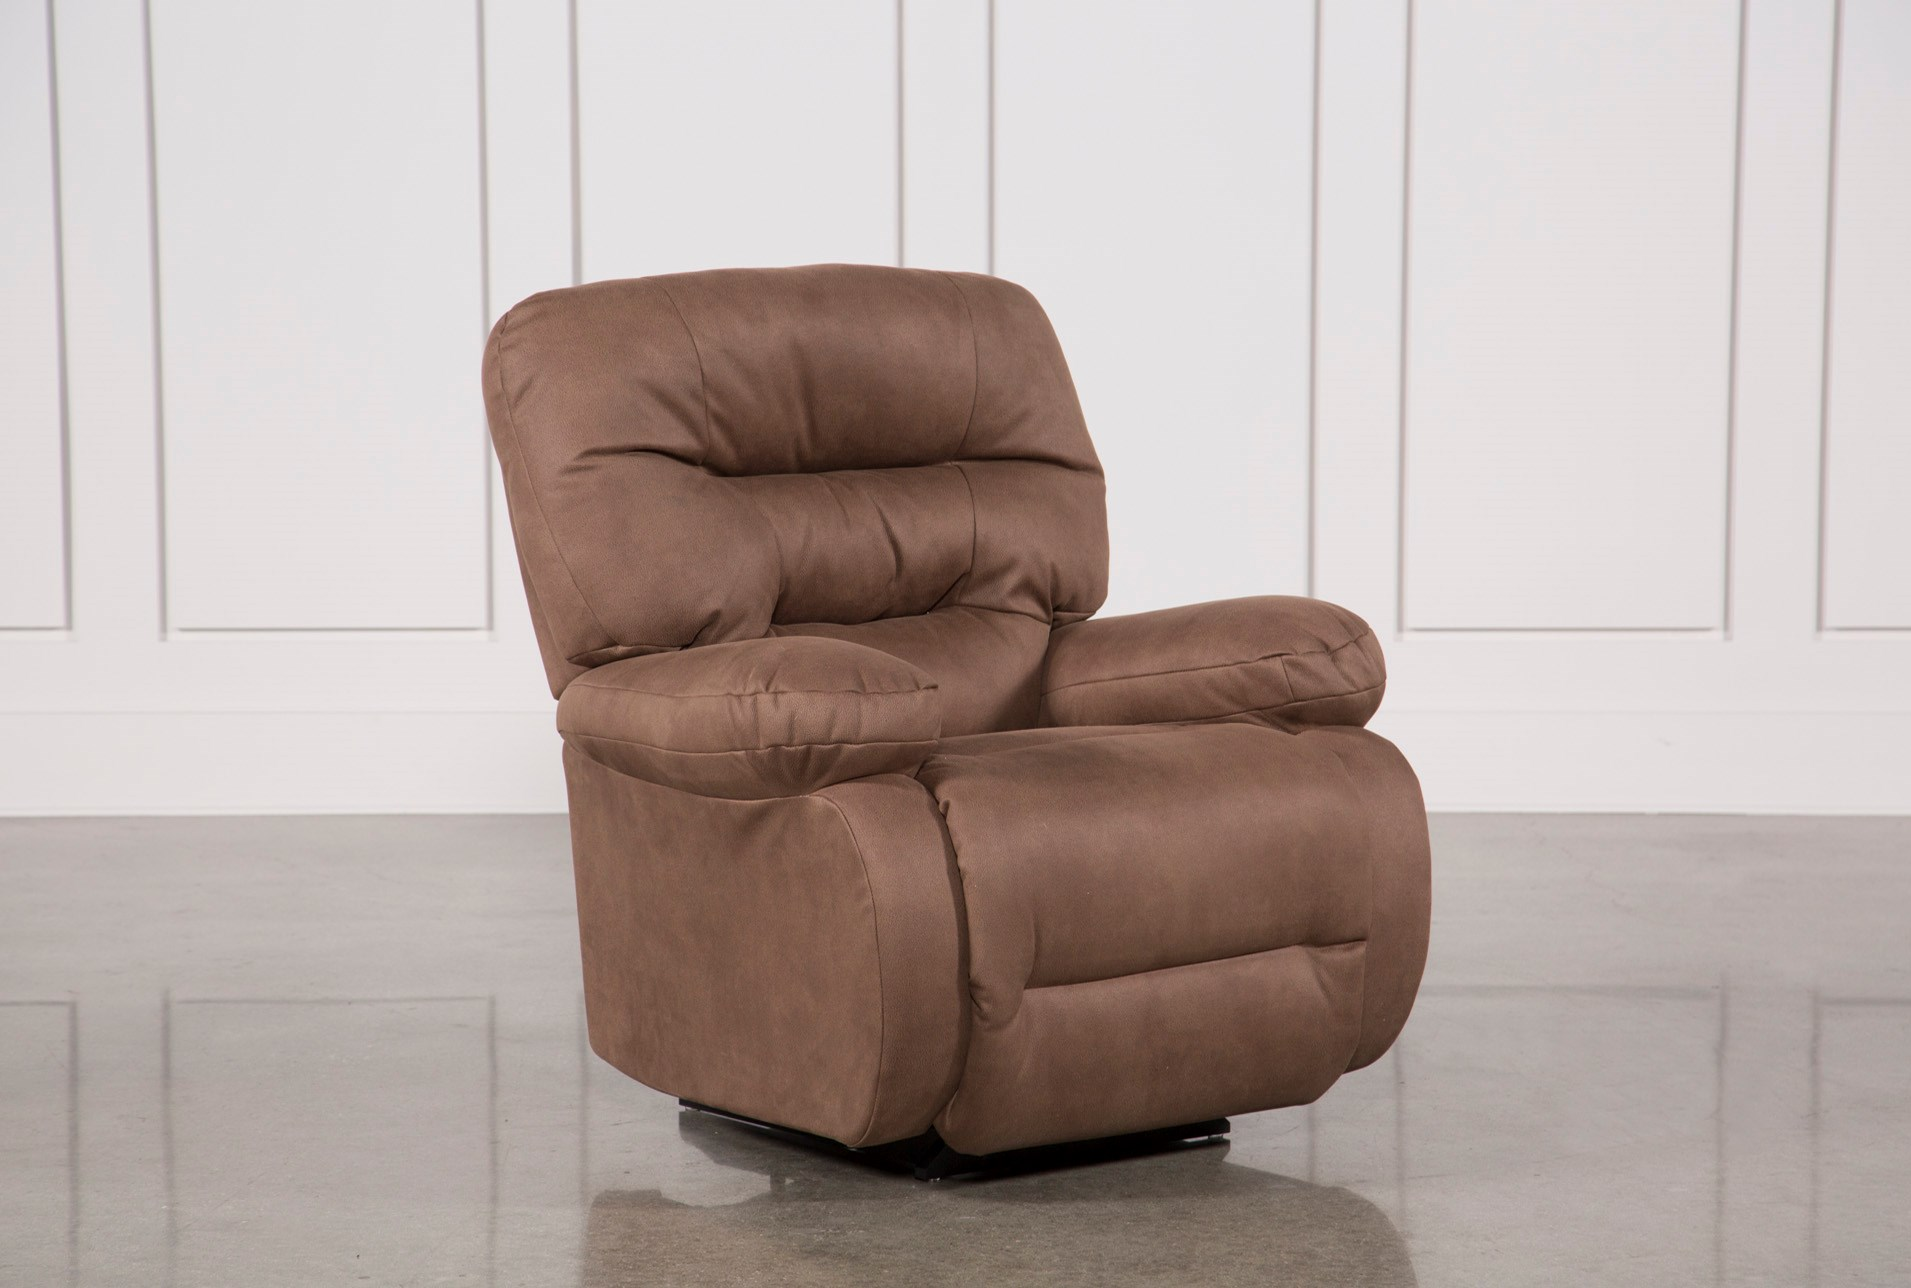 comforter size x design of recliner s inspirations most chairs comfortable leather world photo recliners